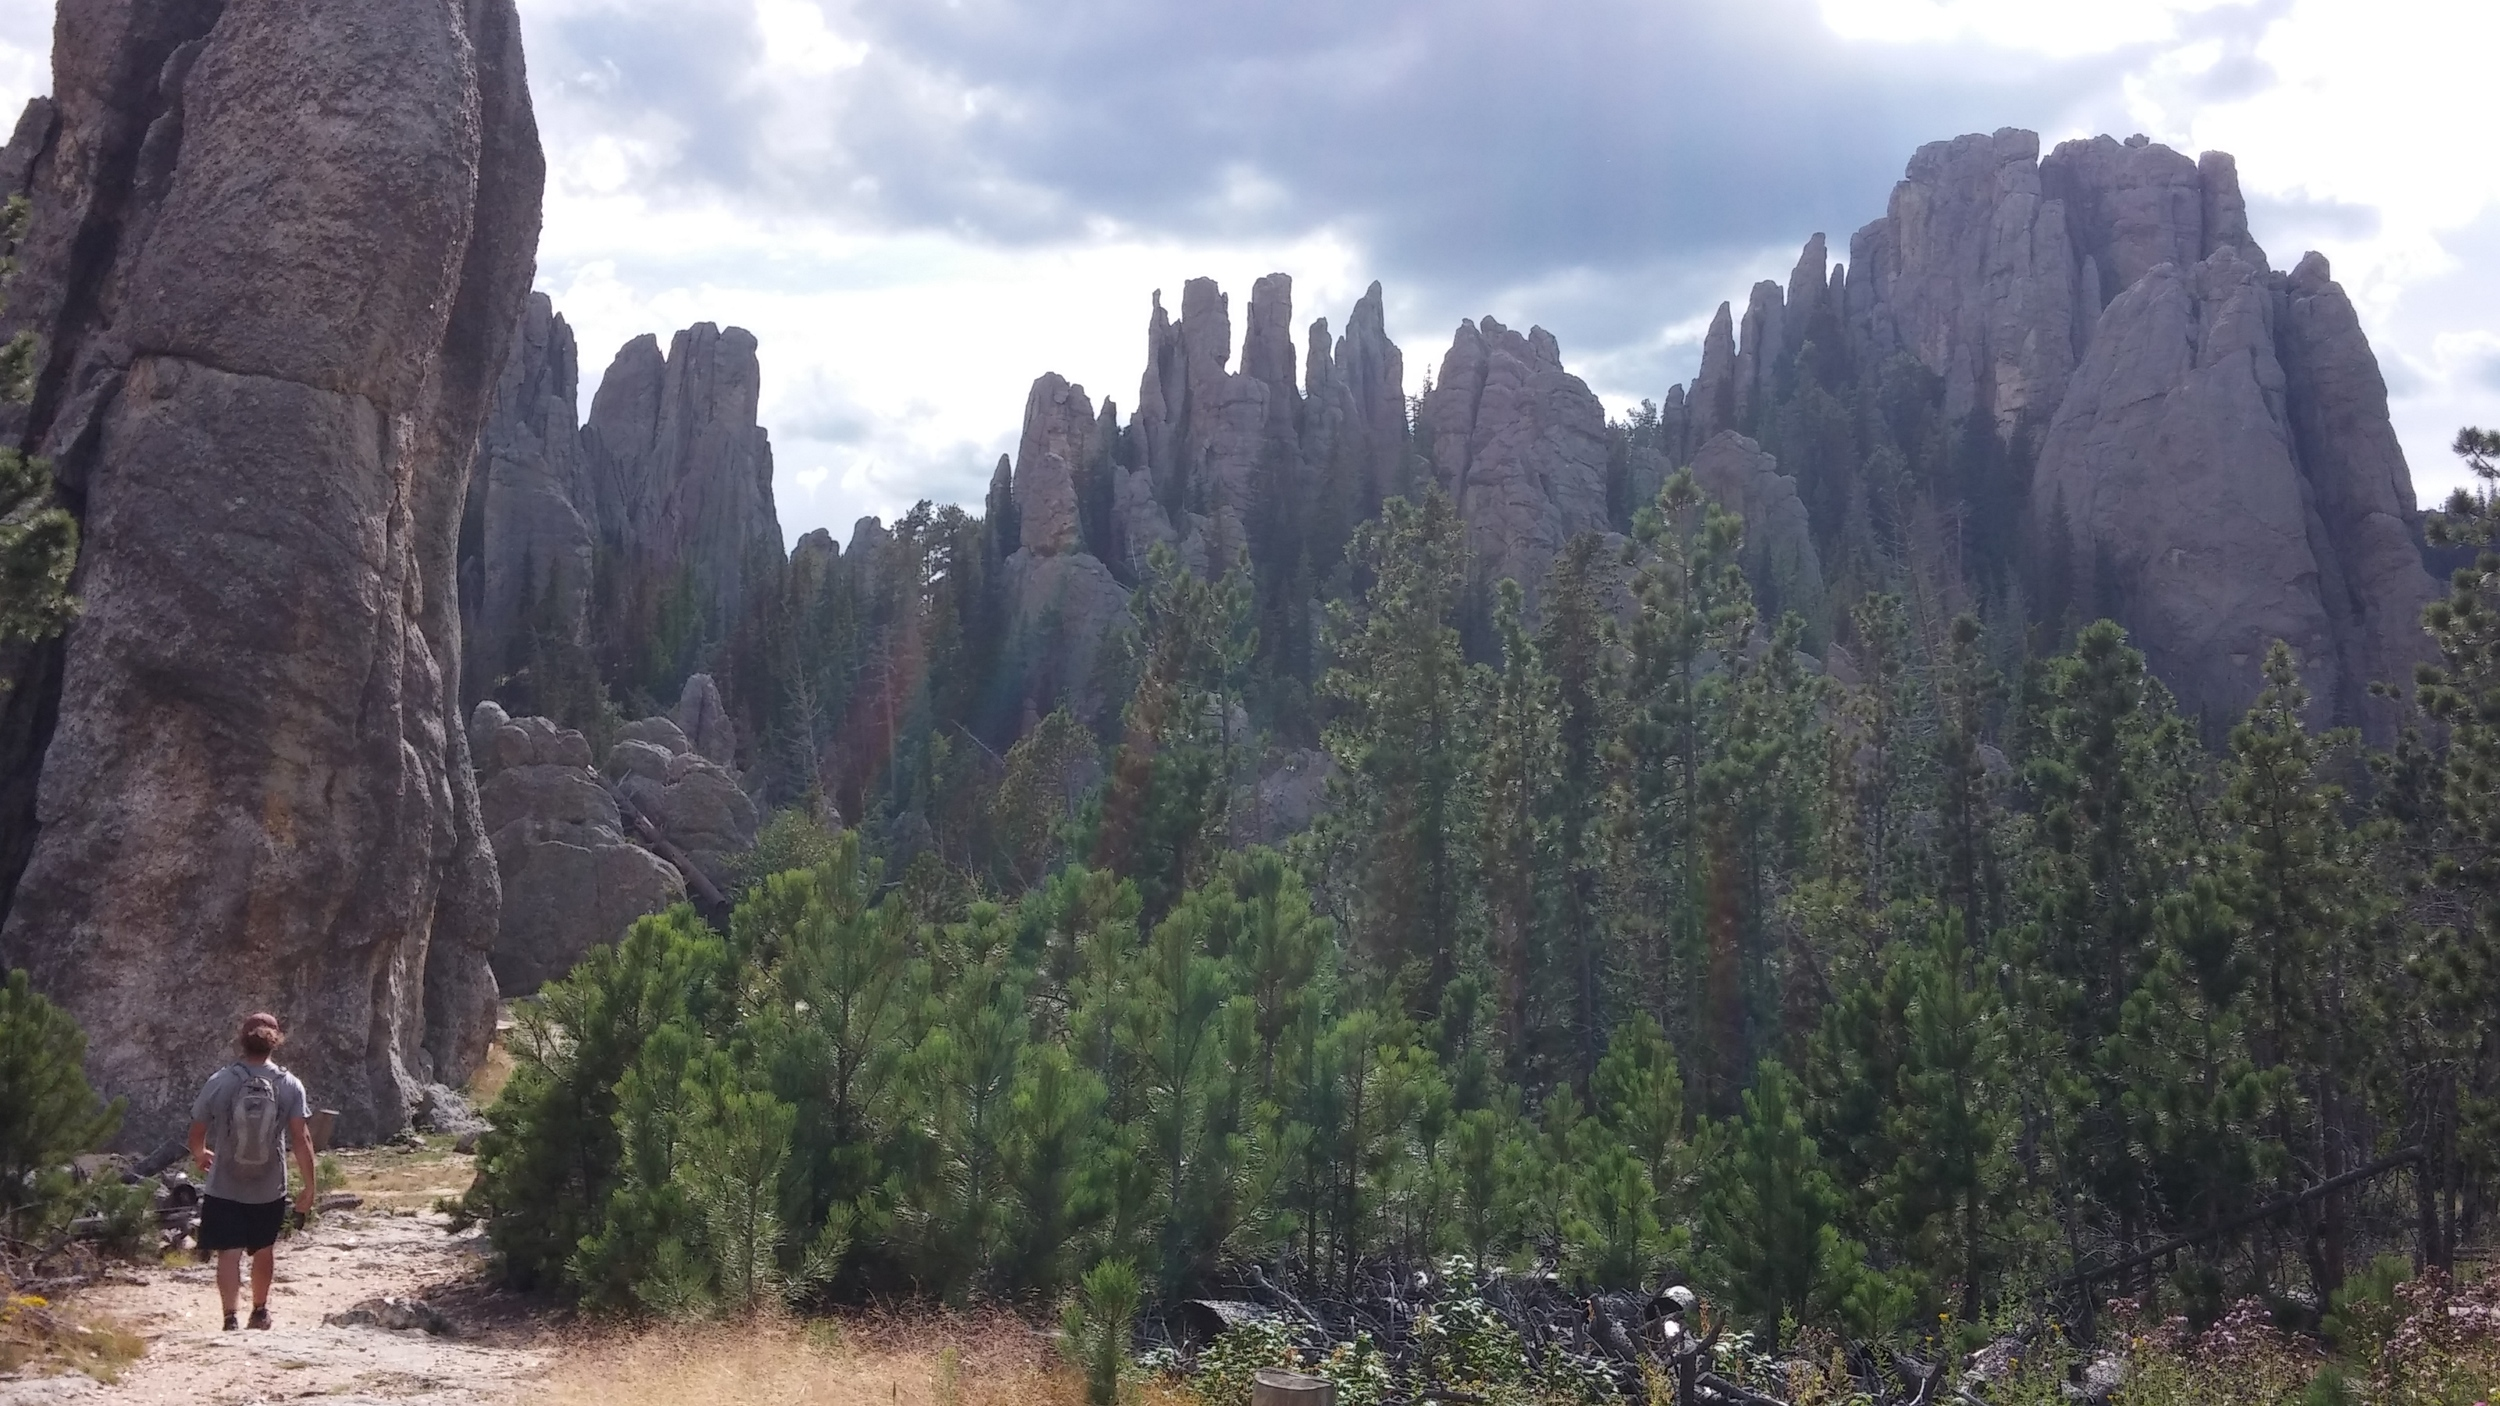 Hiking at the feet of the spires.